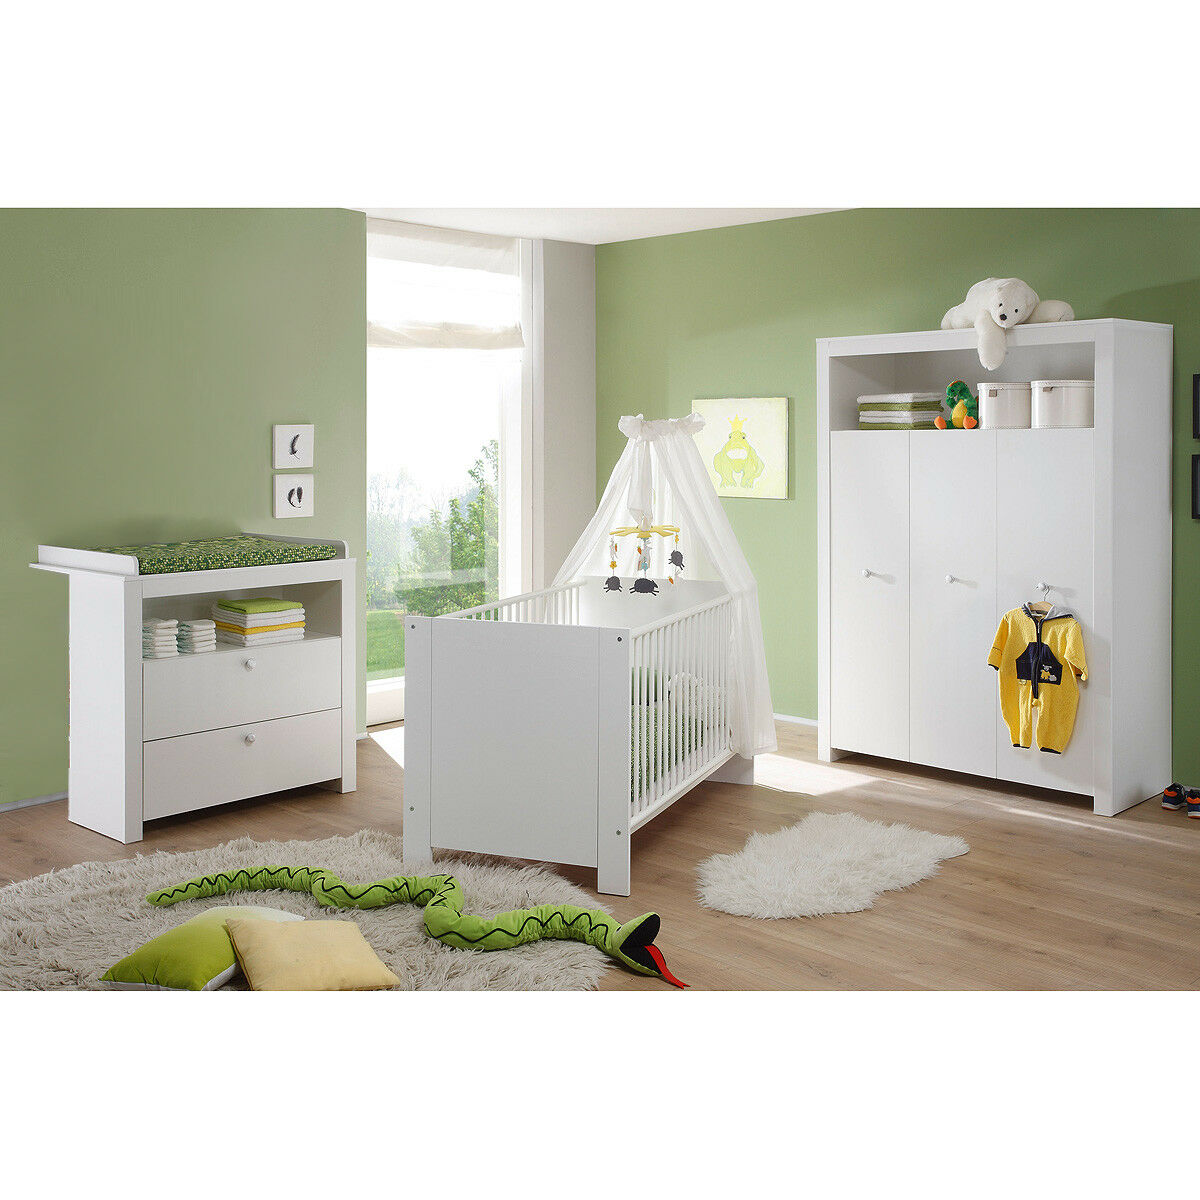 babyzimmer set olivia kinderzimmer babym bel komplett in wei 3 teilig eur 389 95 picclick de. Black Bedroom Furniture Sets. Home Design Ideas